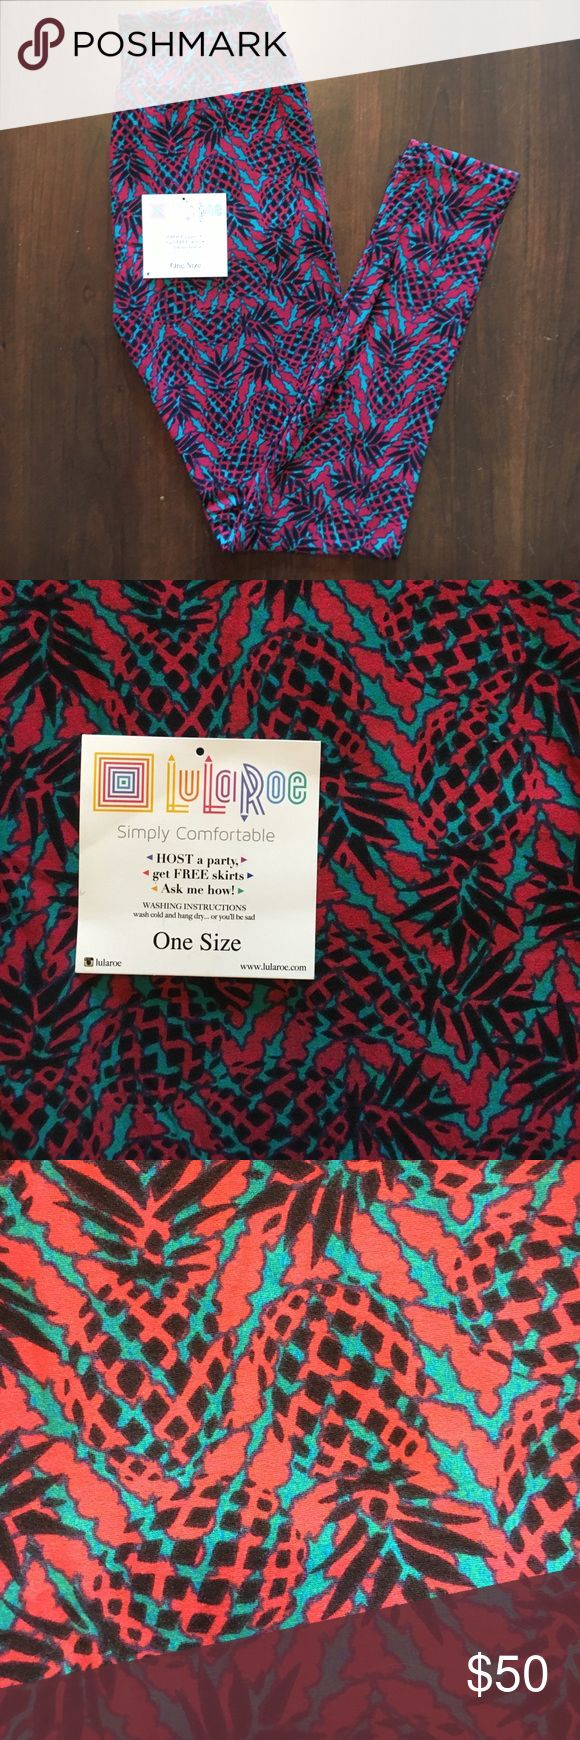 Brand new lularoe rare pineapple leggings OS Brand new lularoe pineapple leggings in OS!! Made in Vietnam!! These are really rare in size OS!!! 🦄🦄🦄🦄 super cute for spring and summer time! Reasonable offers are welcome!!! LuLaRoe Pants Leggings